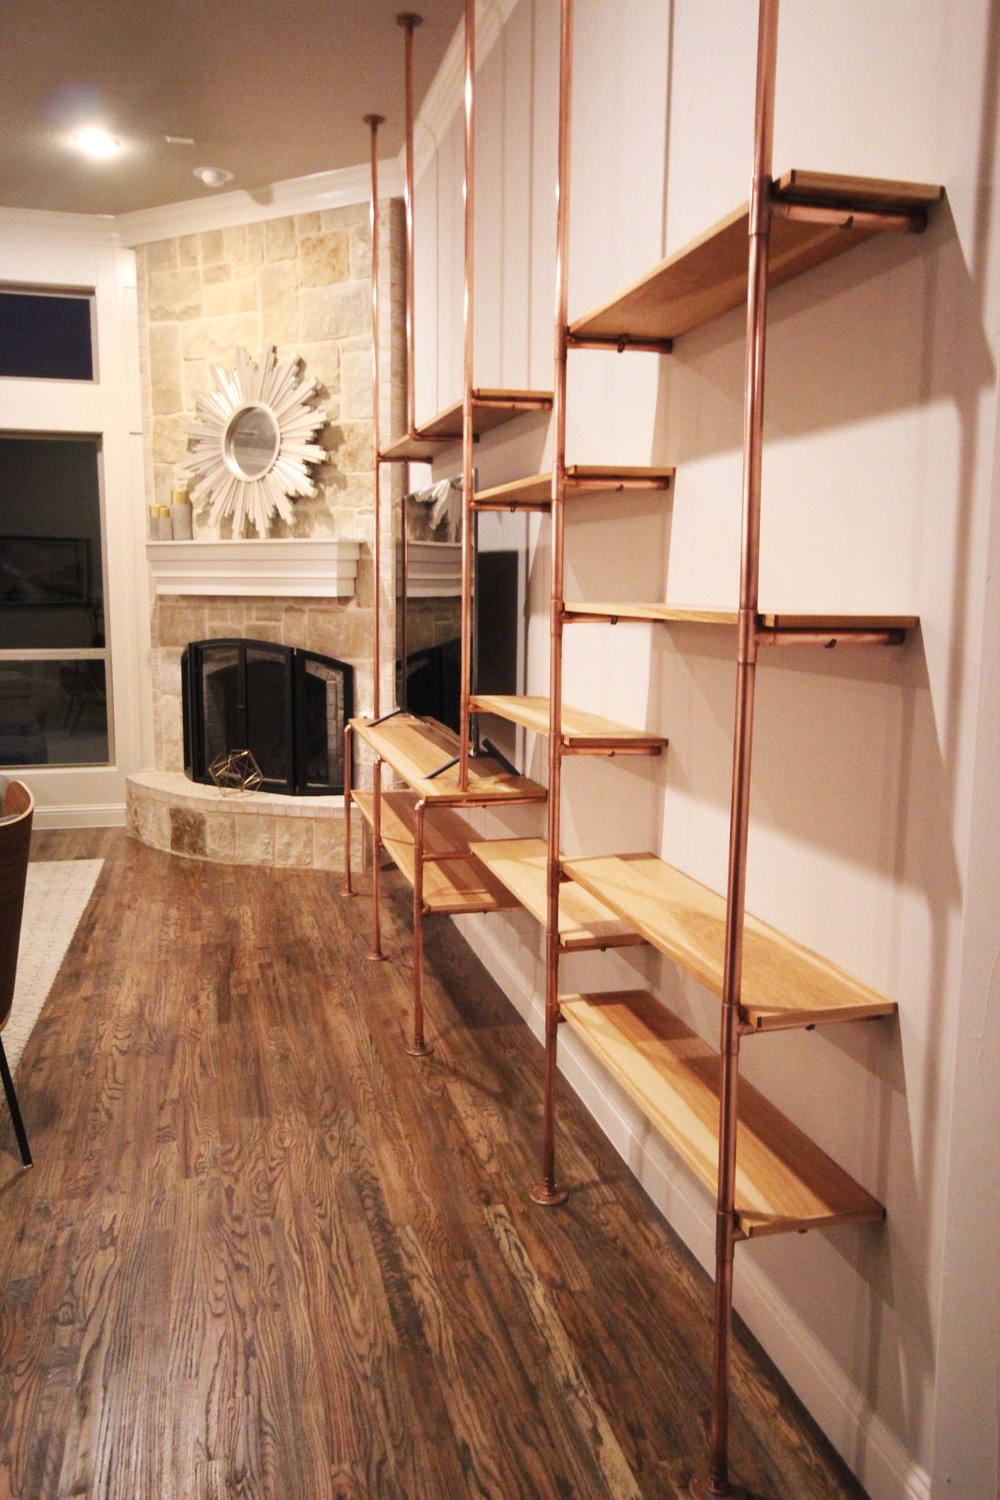 COPPER & PECAN SHELVES - RESIDENCE IN FARMERS BRANCH, TX